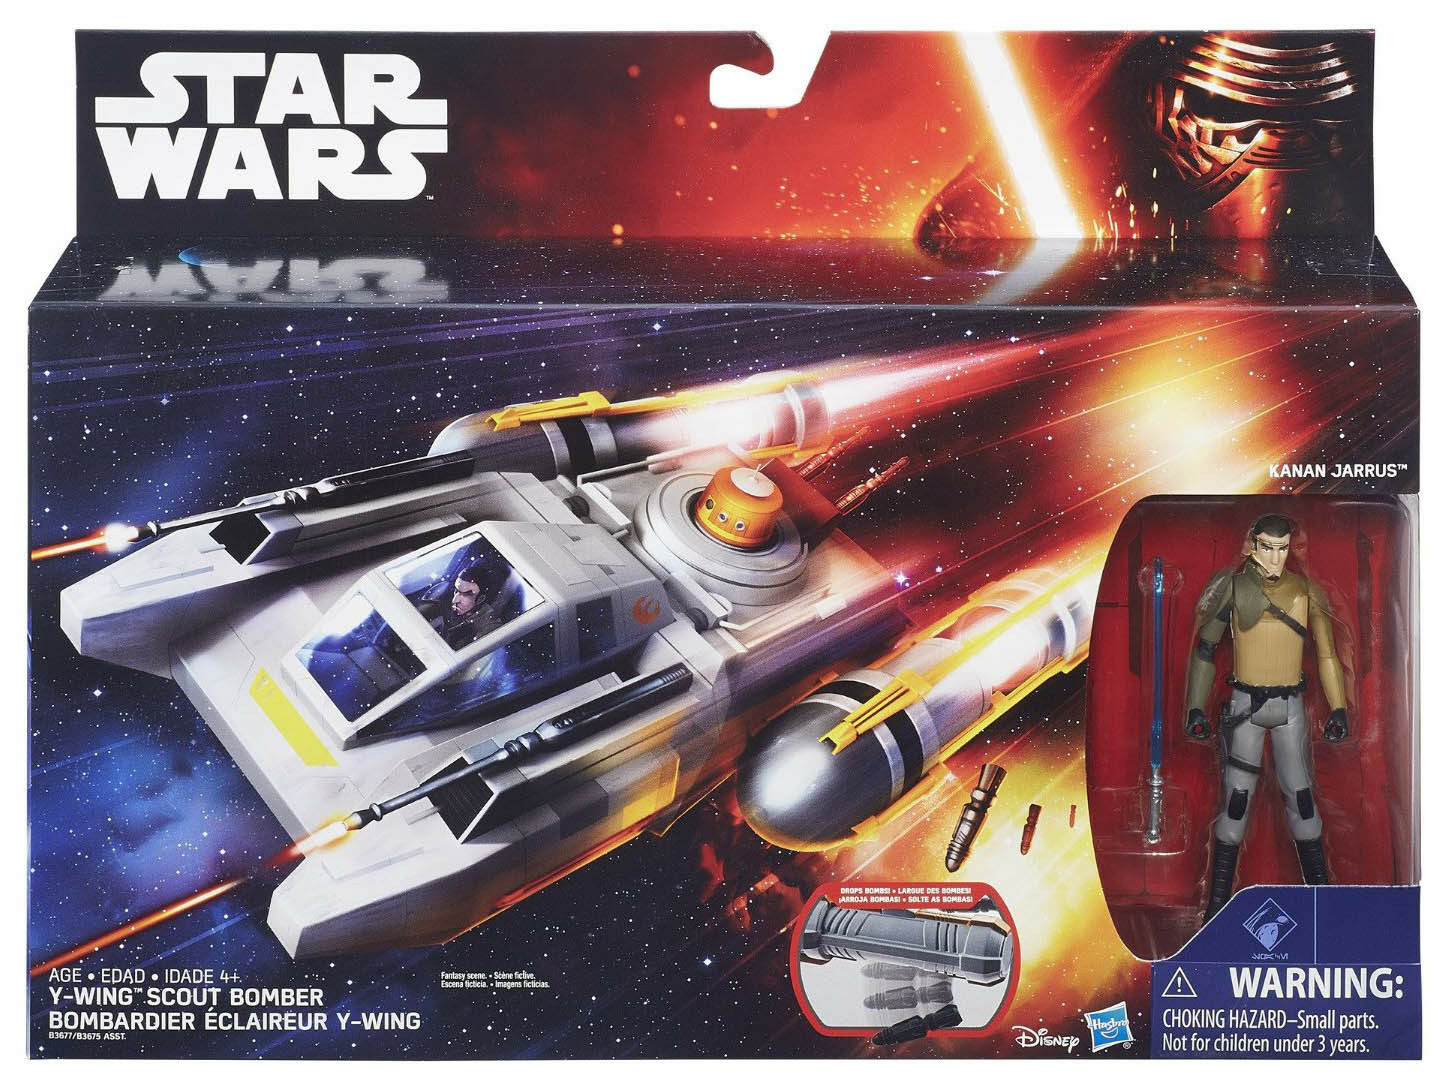 STAR WARS REBELS 3.75-INCH SCALE Y-WING SCOUT BOMBER WITH WITH WITH KANAN JARRUS FIGURE 68caad